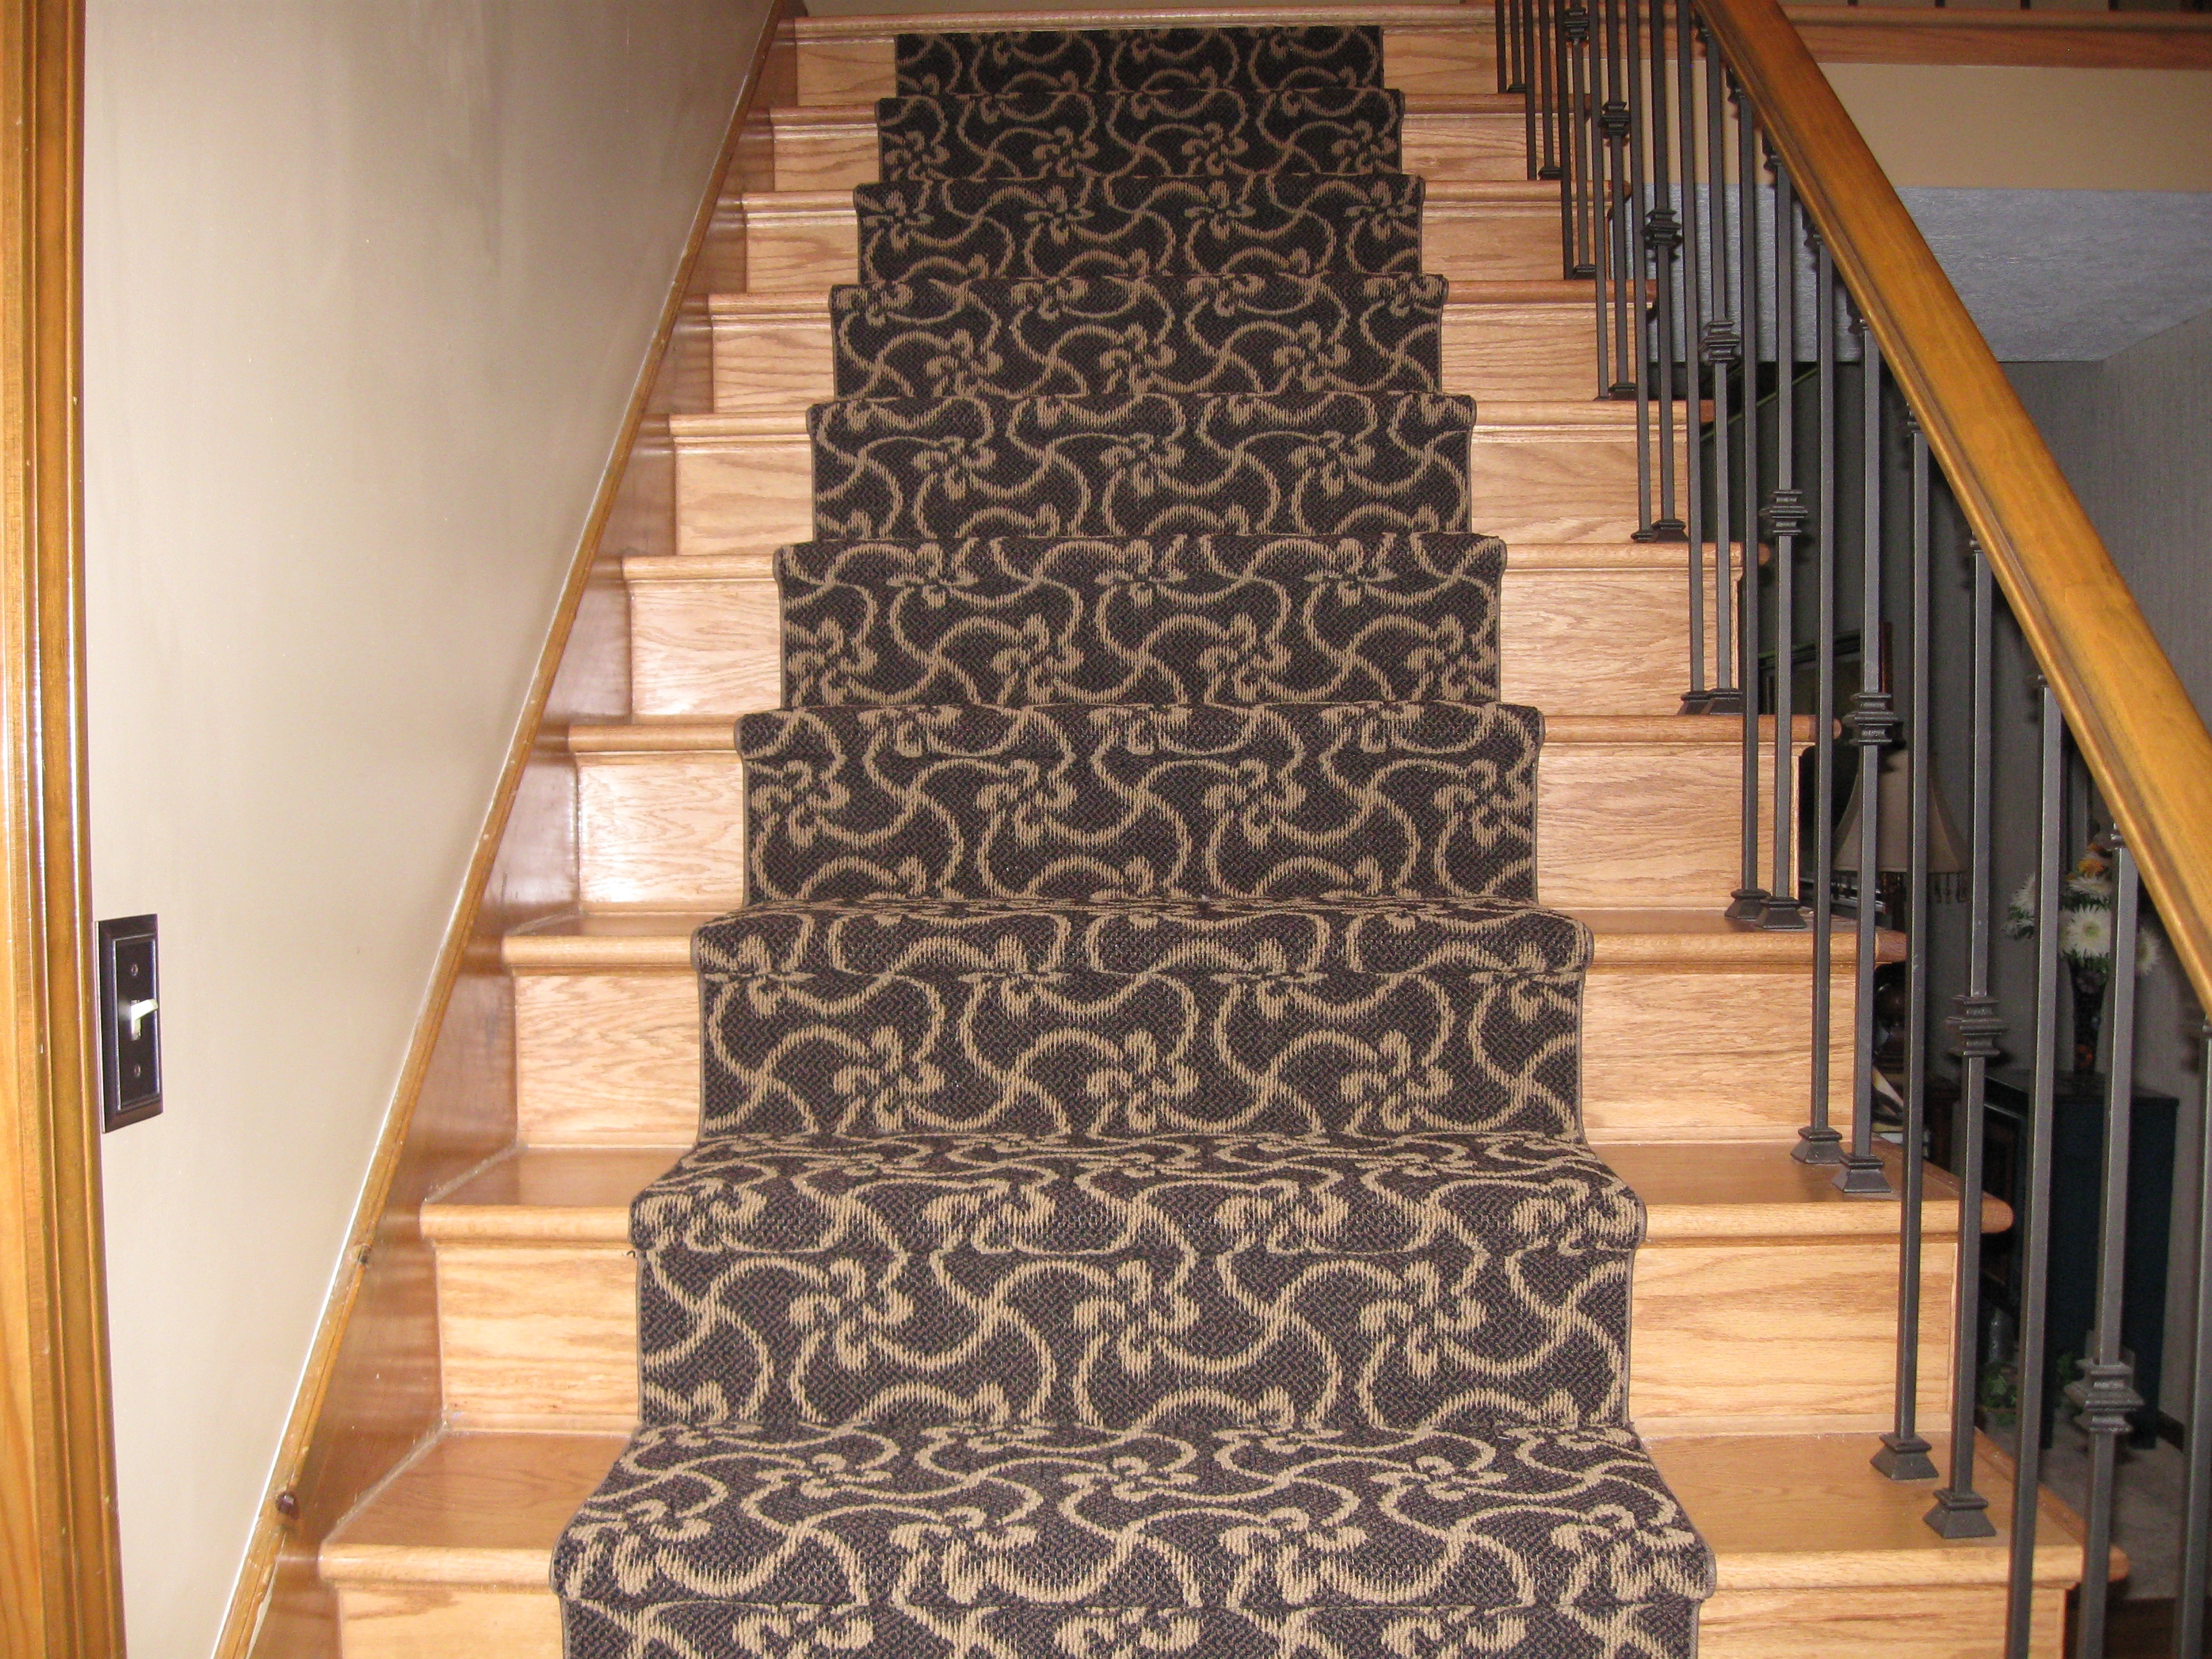 Stairway Rugs Roselawnlutheran Regarding Stair Tread Carpet Rods (Image 15 of 15)